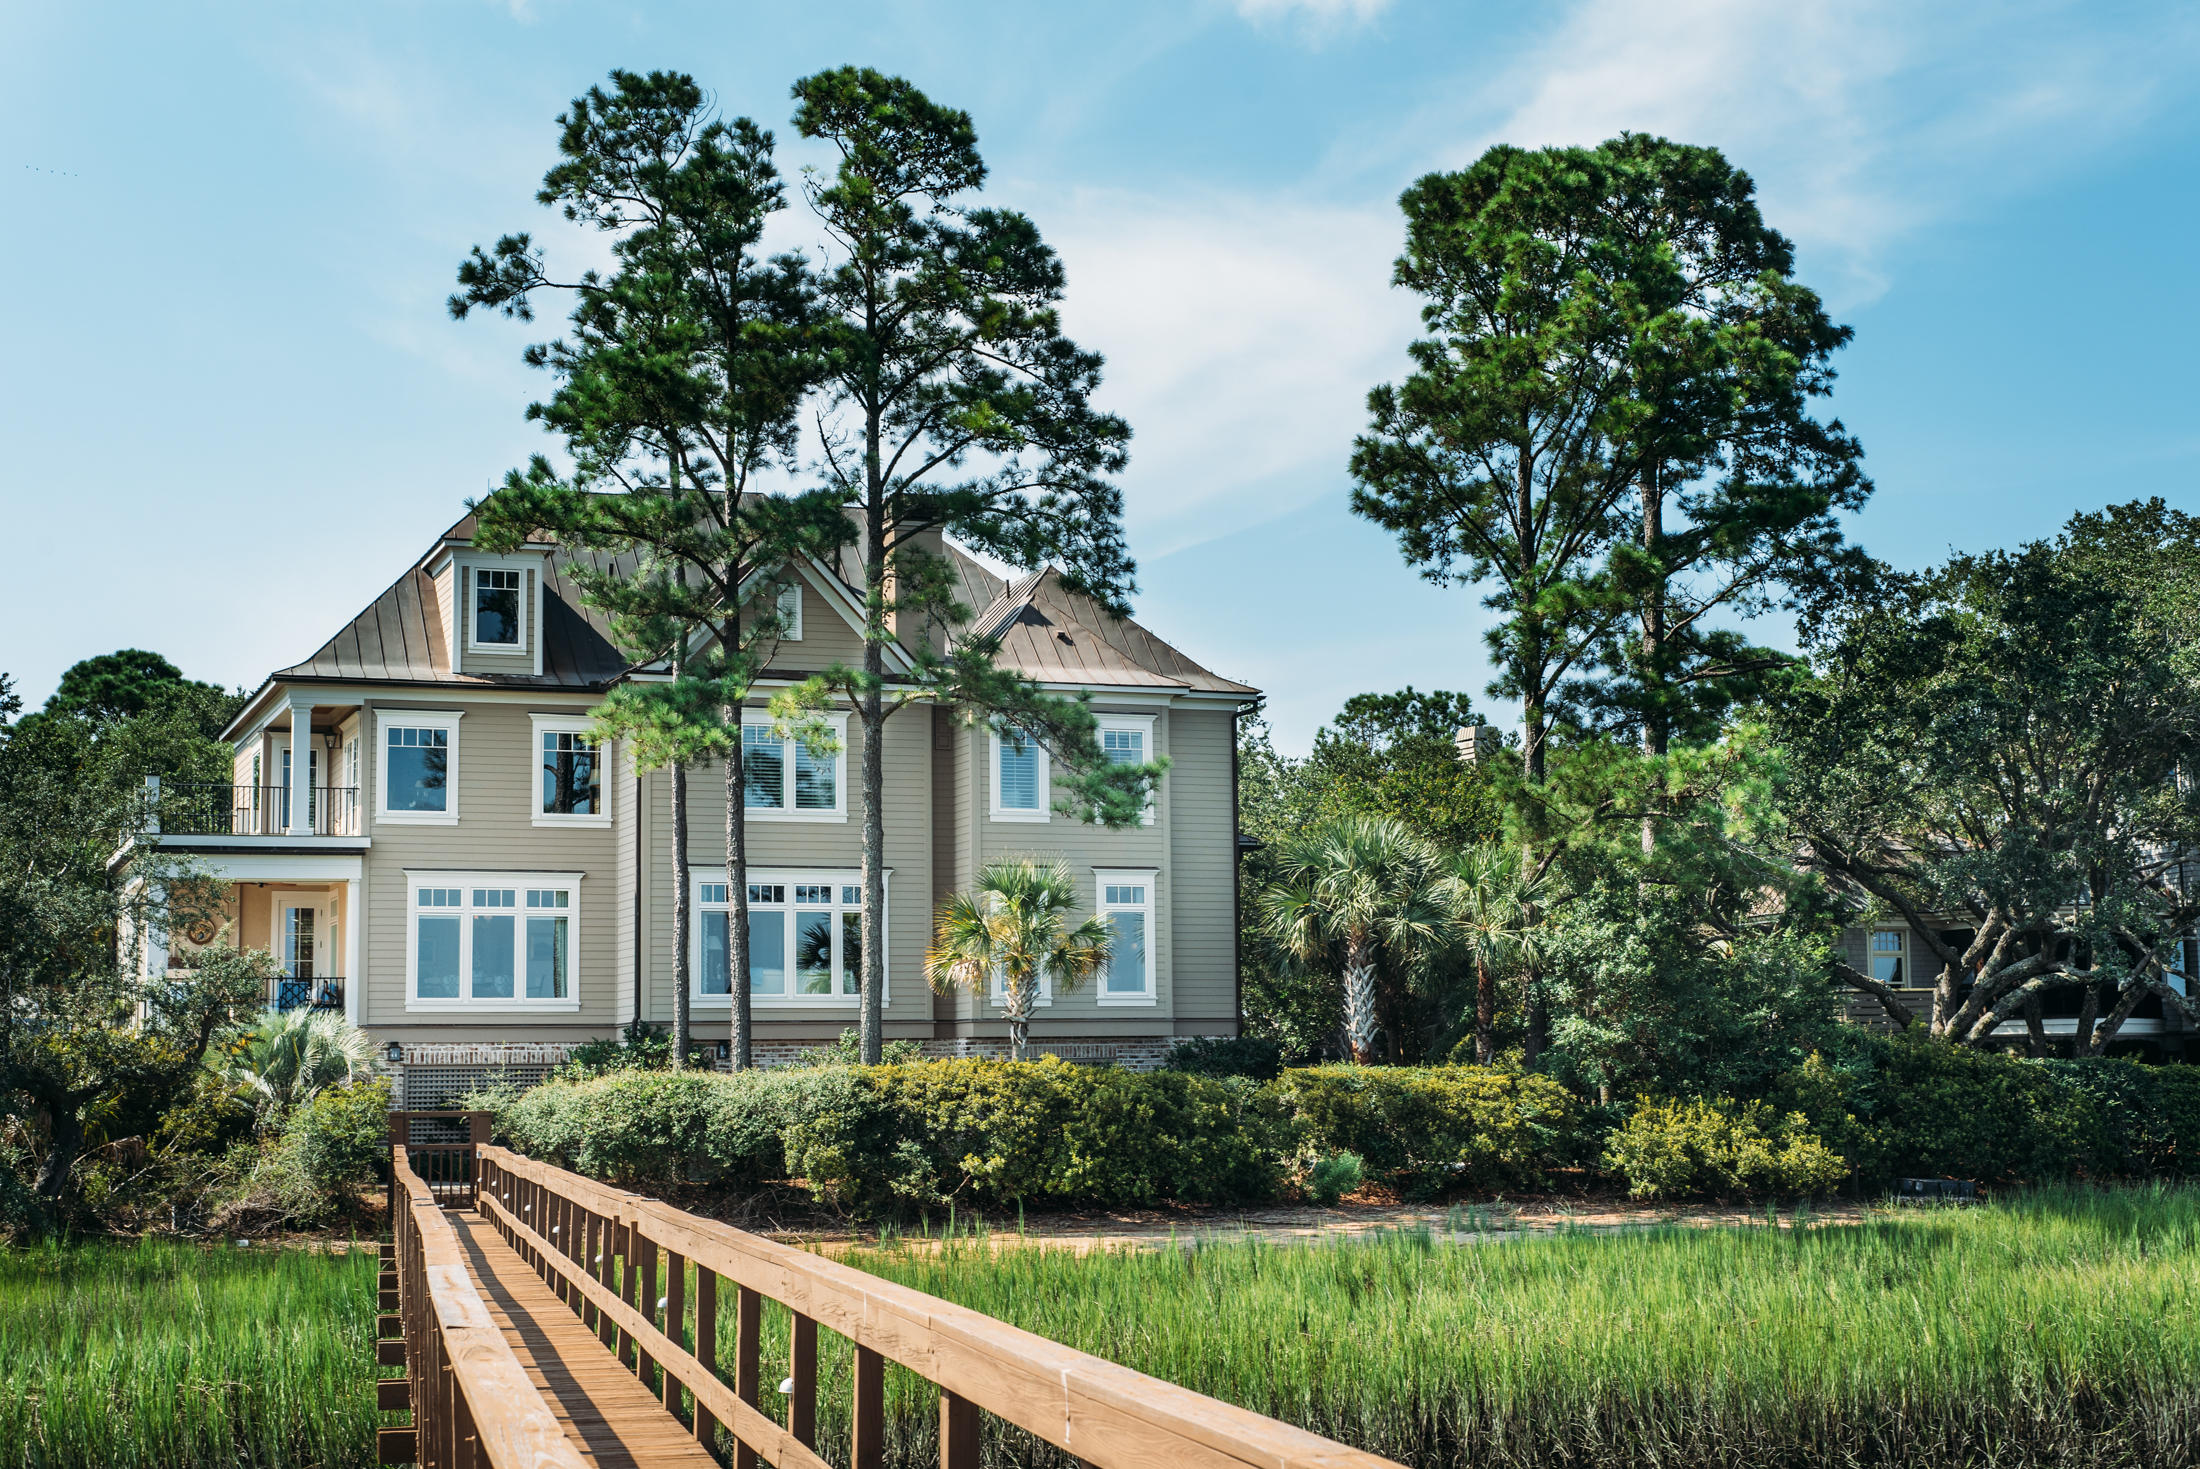 Kiawah Island Homes For Sale - 29 Rhetts Bluff, Kiawah Island, SC - 10